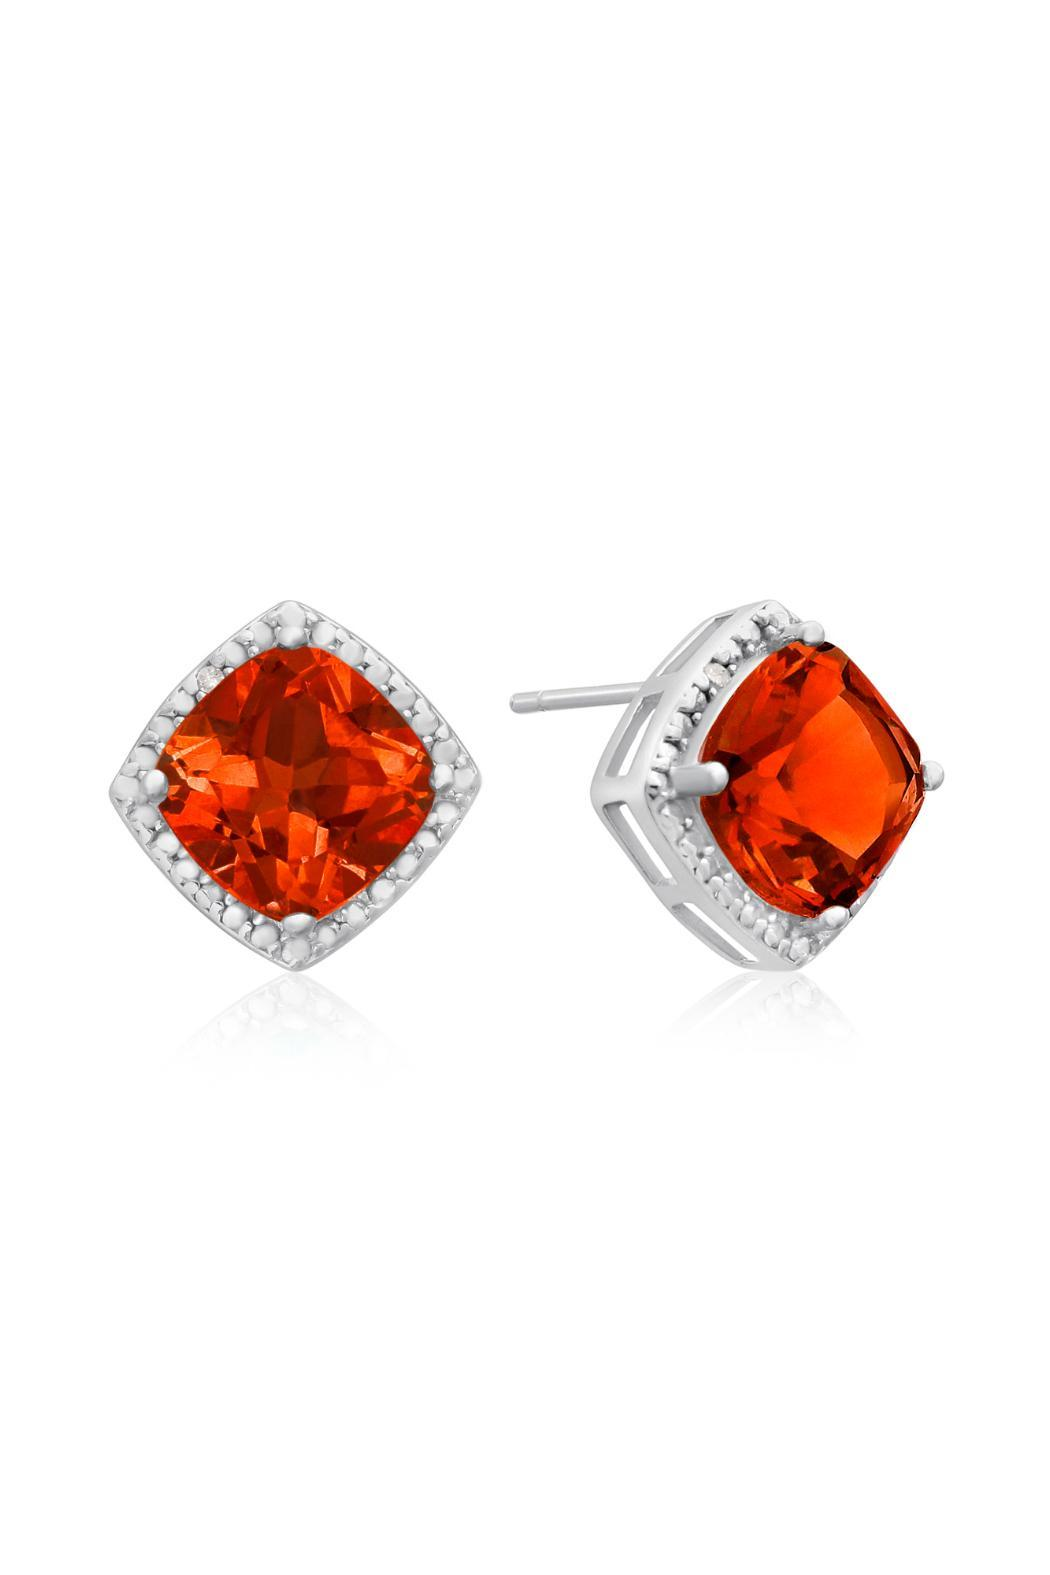 usd fine sotheby million total magnificent october hong sothebys ring earrings sale and a padparadscha of jadeite lot s kong sapphire jewels autumn registers diamond